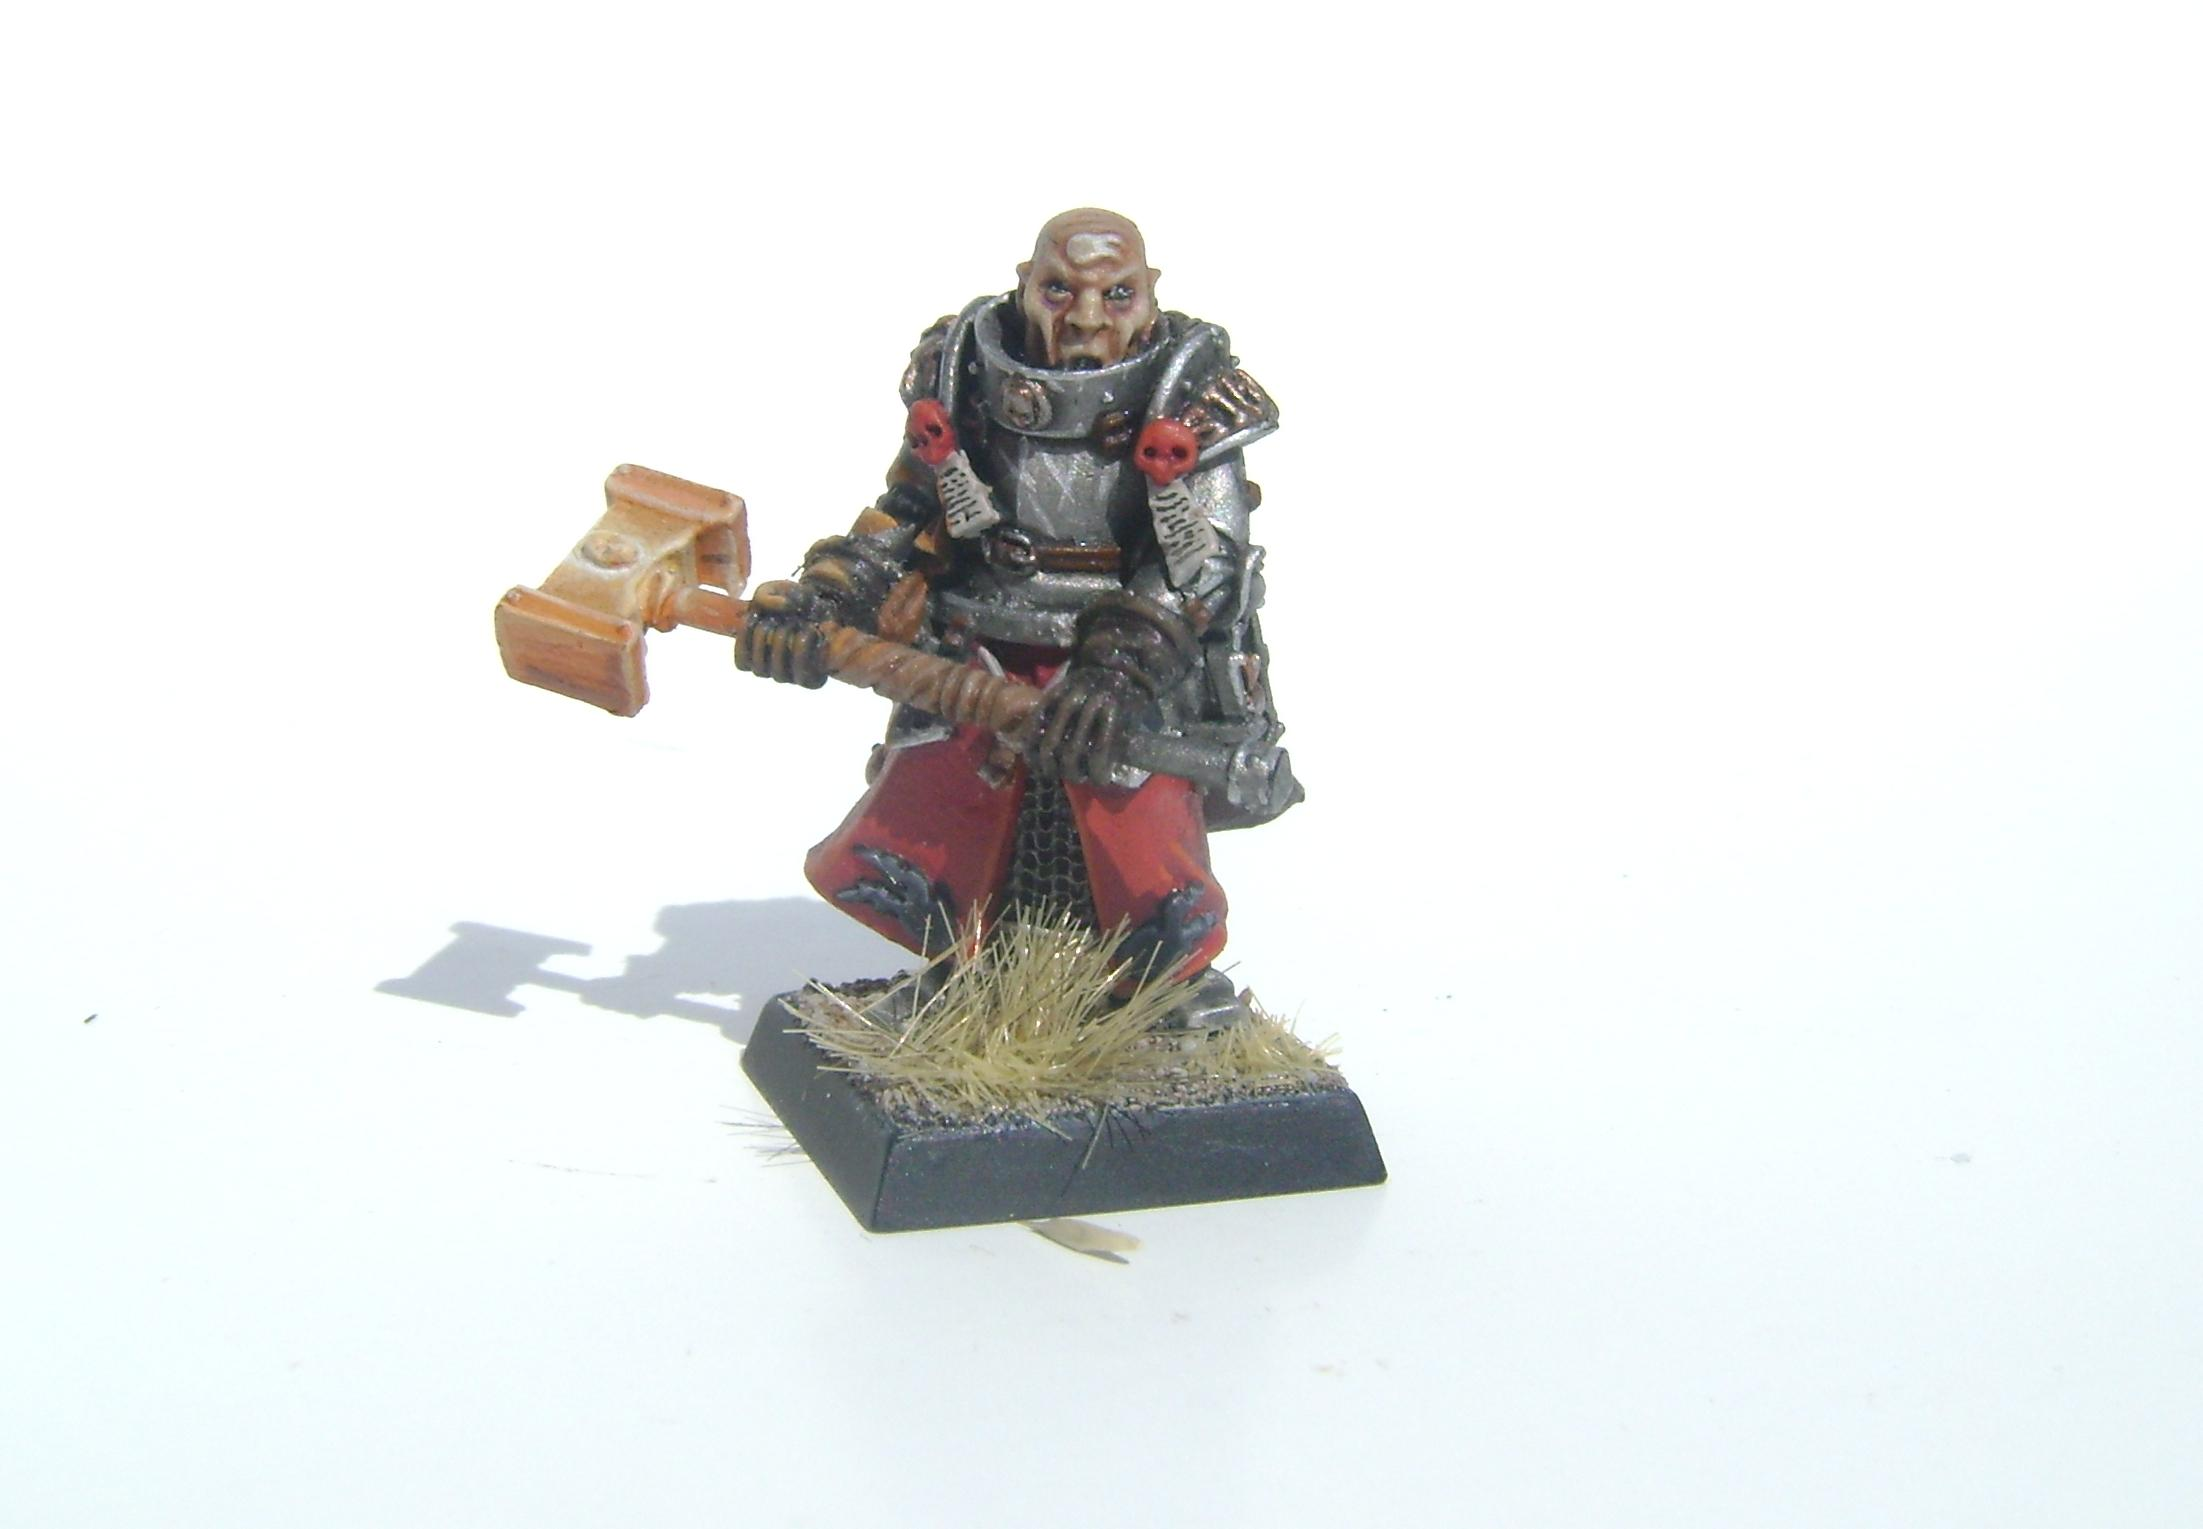 Arch Lector, Empire, Ostermark, Warhammer Fantasy, Warrior Priest